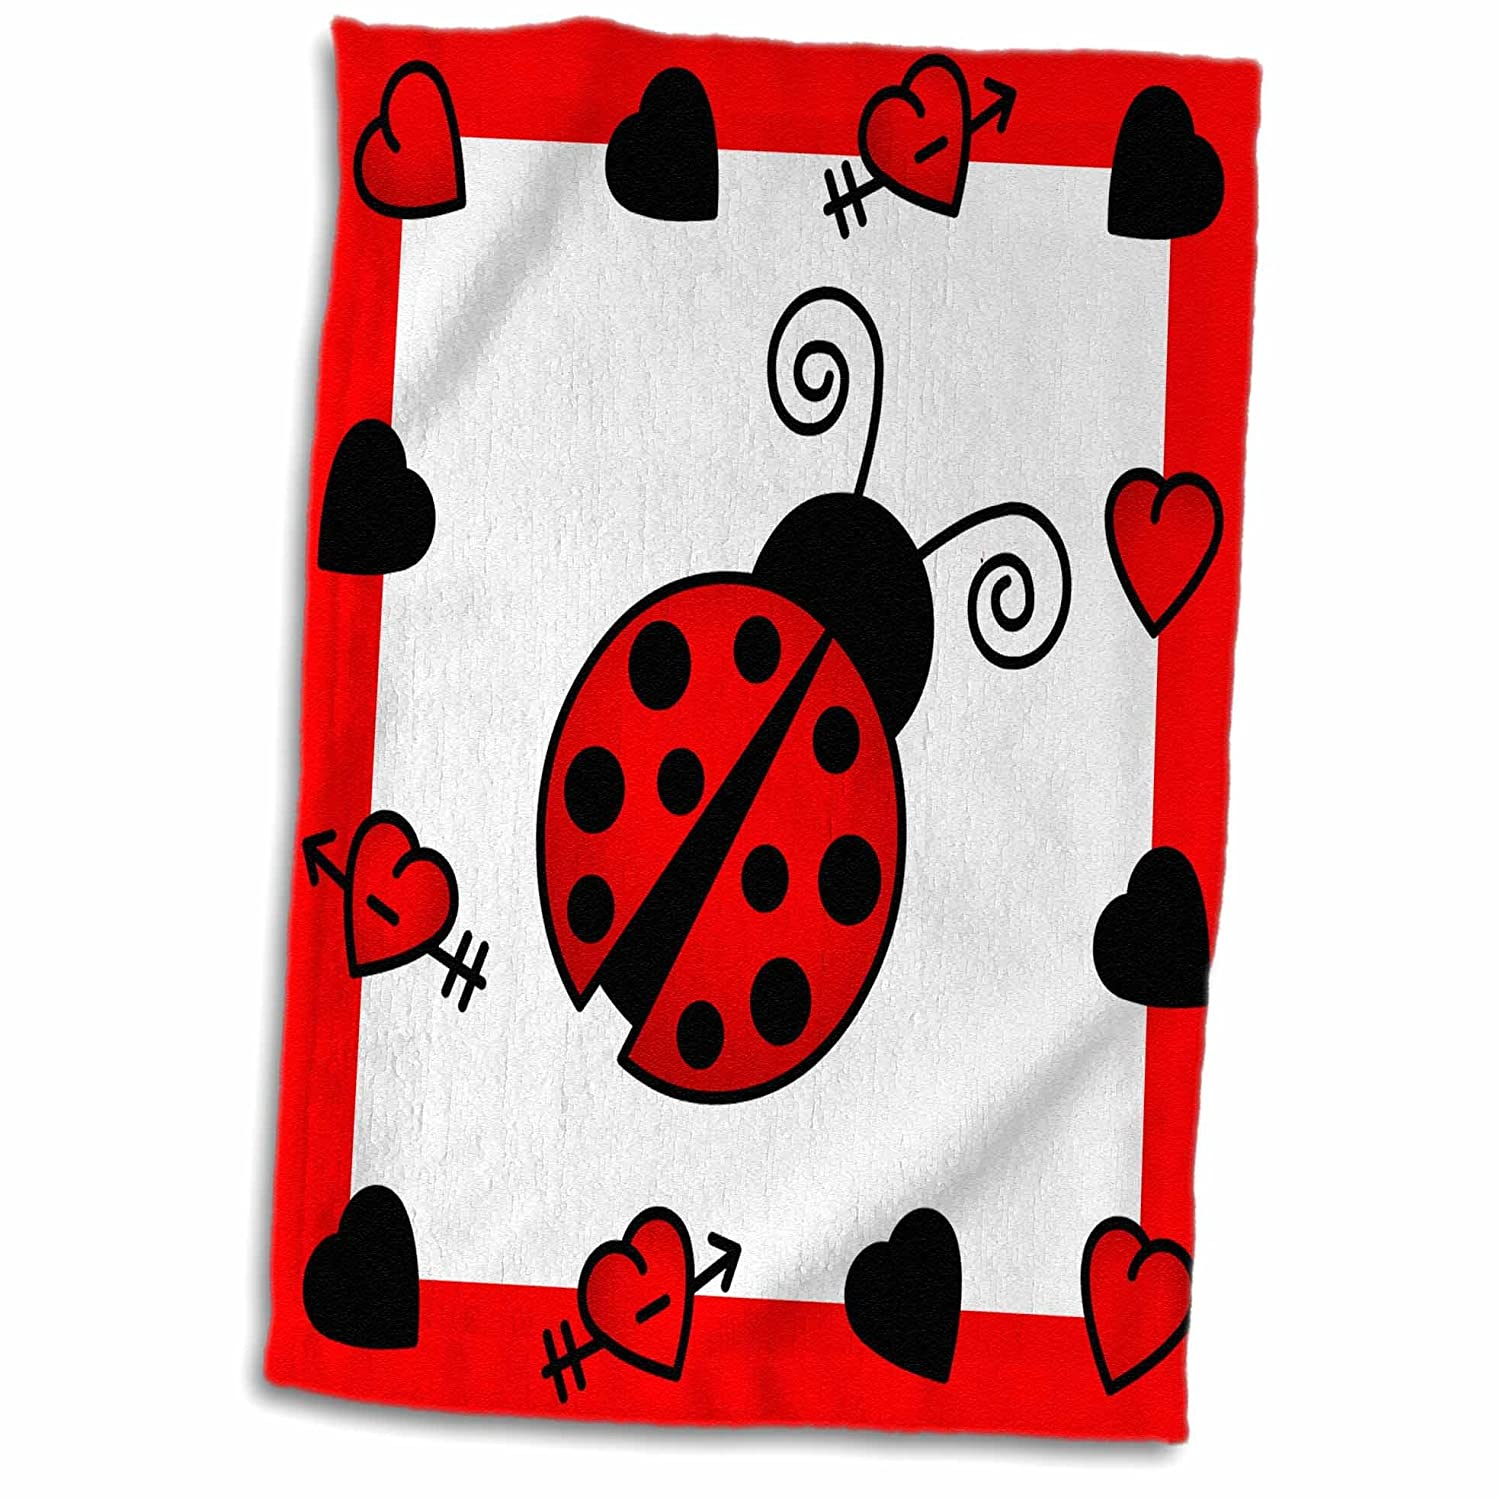 3D Rose Love Bugs Red Ladybug with Hearts TWL/_12112/_1 Towel 15 x 22